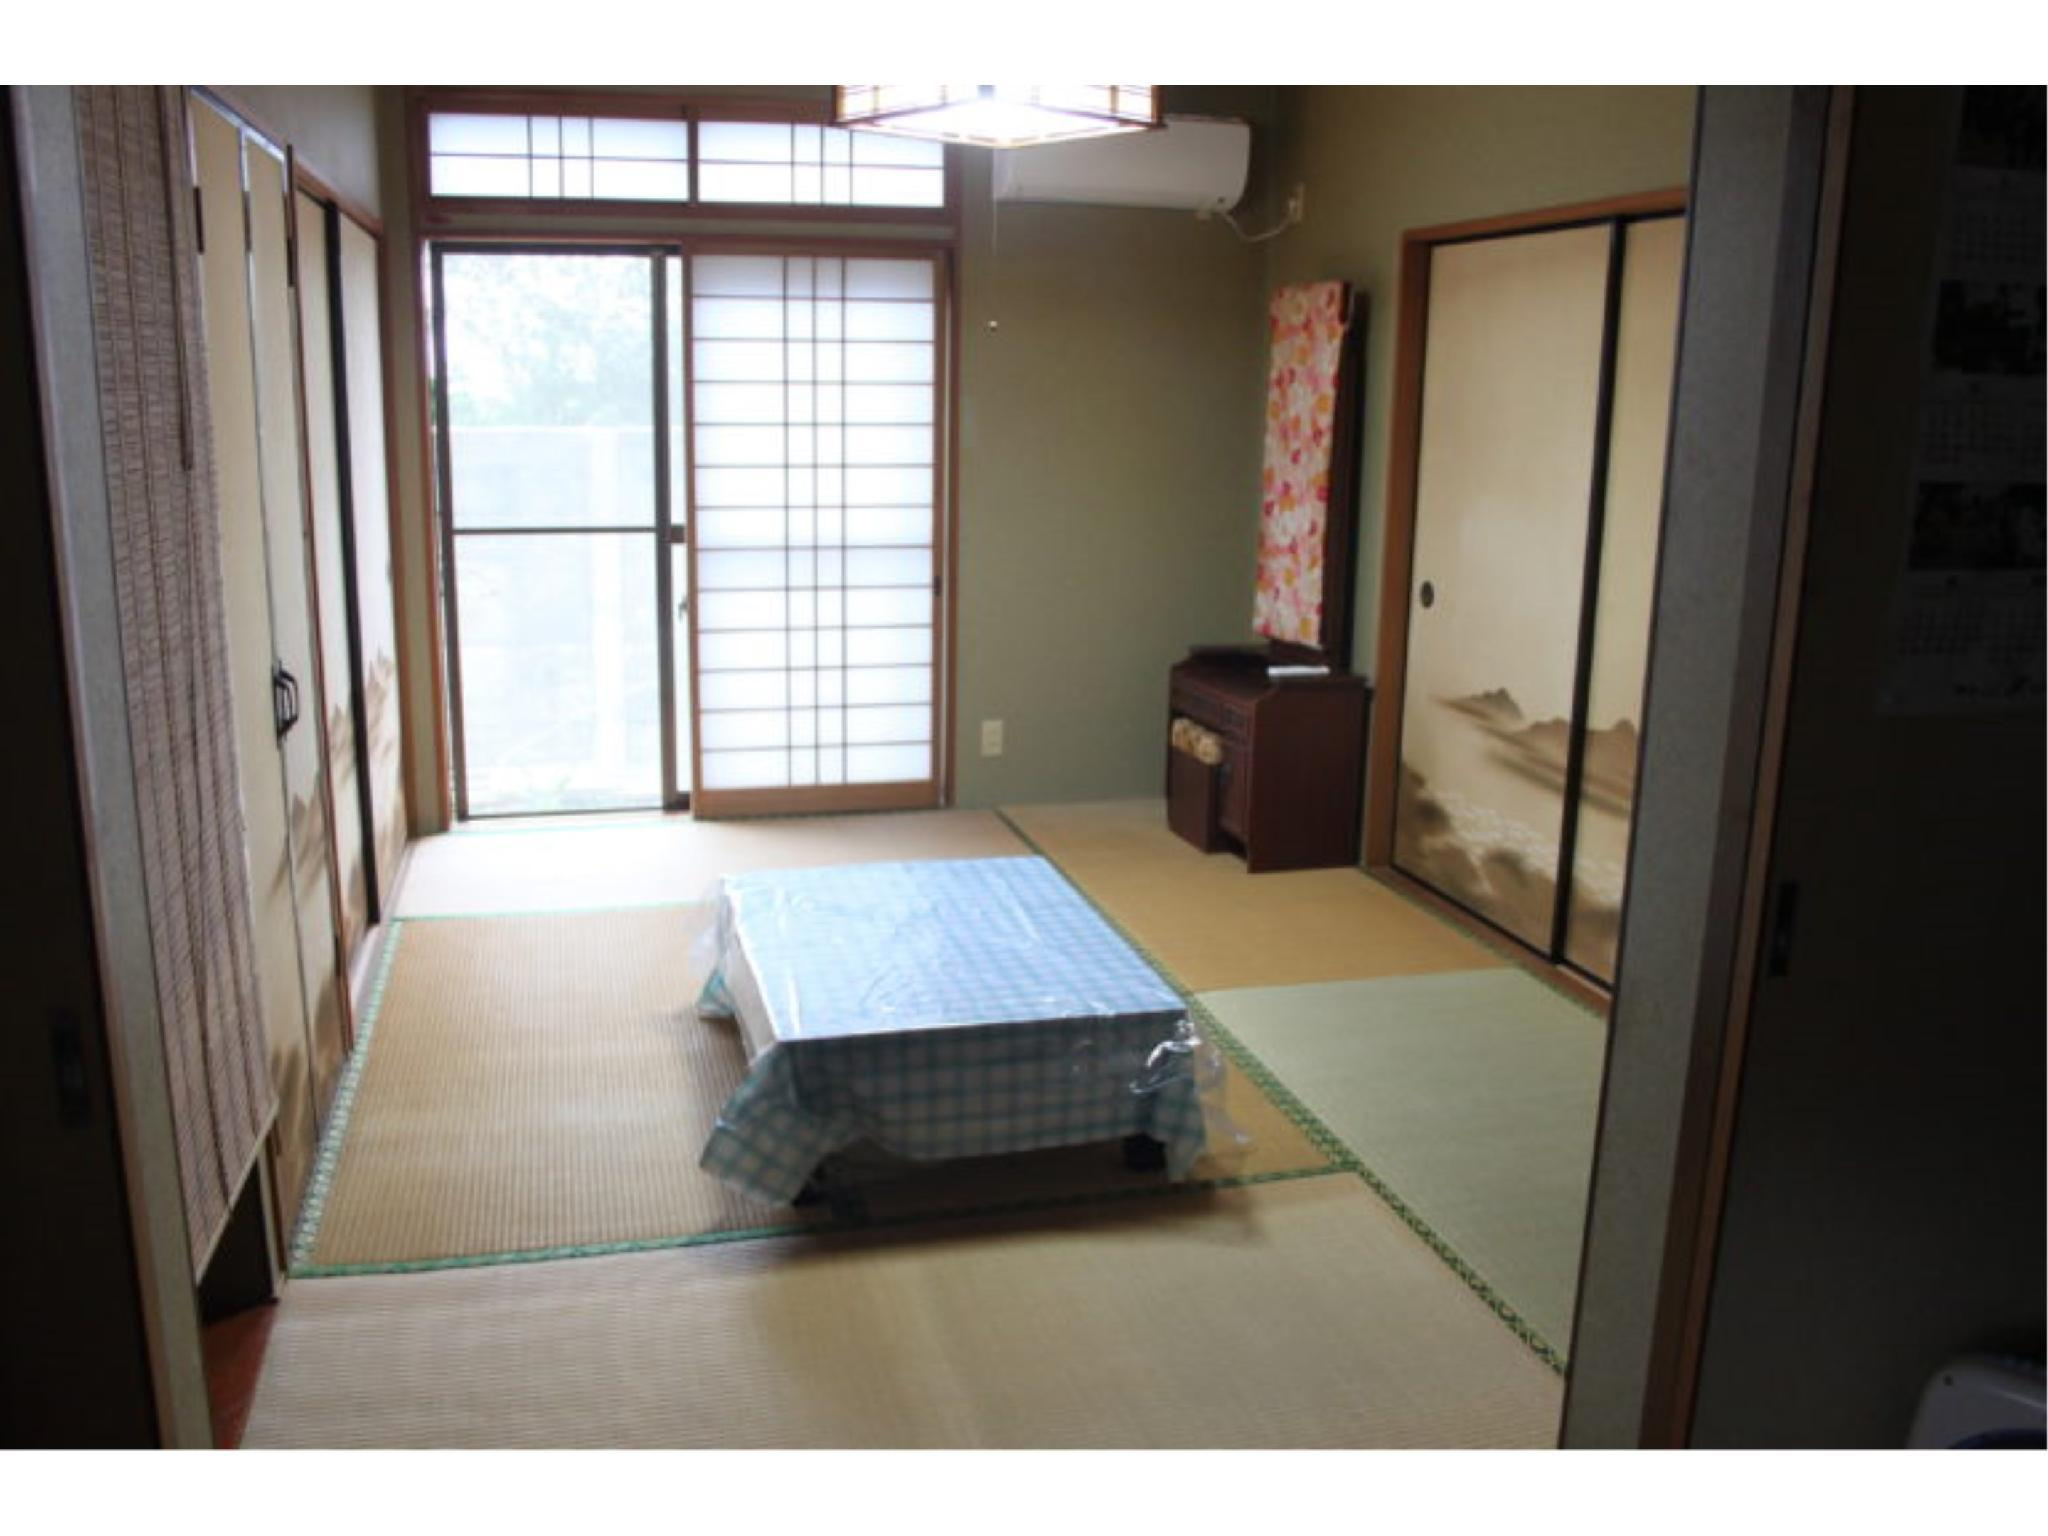 다다미 객실(103호) (Japanese-style Room (No. 103))